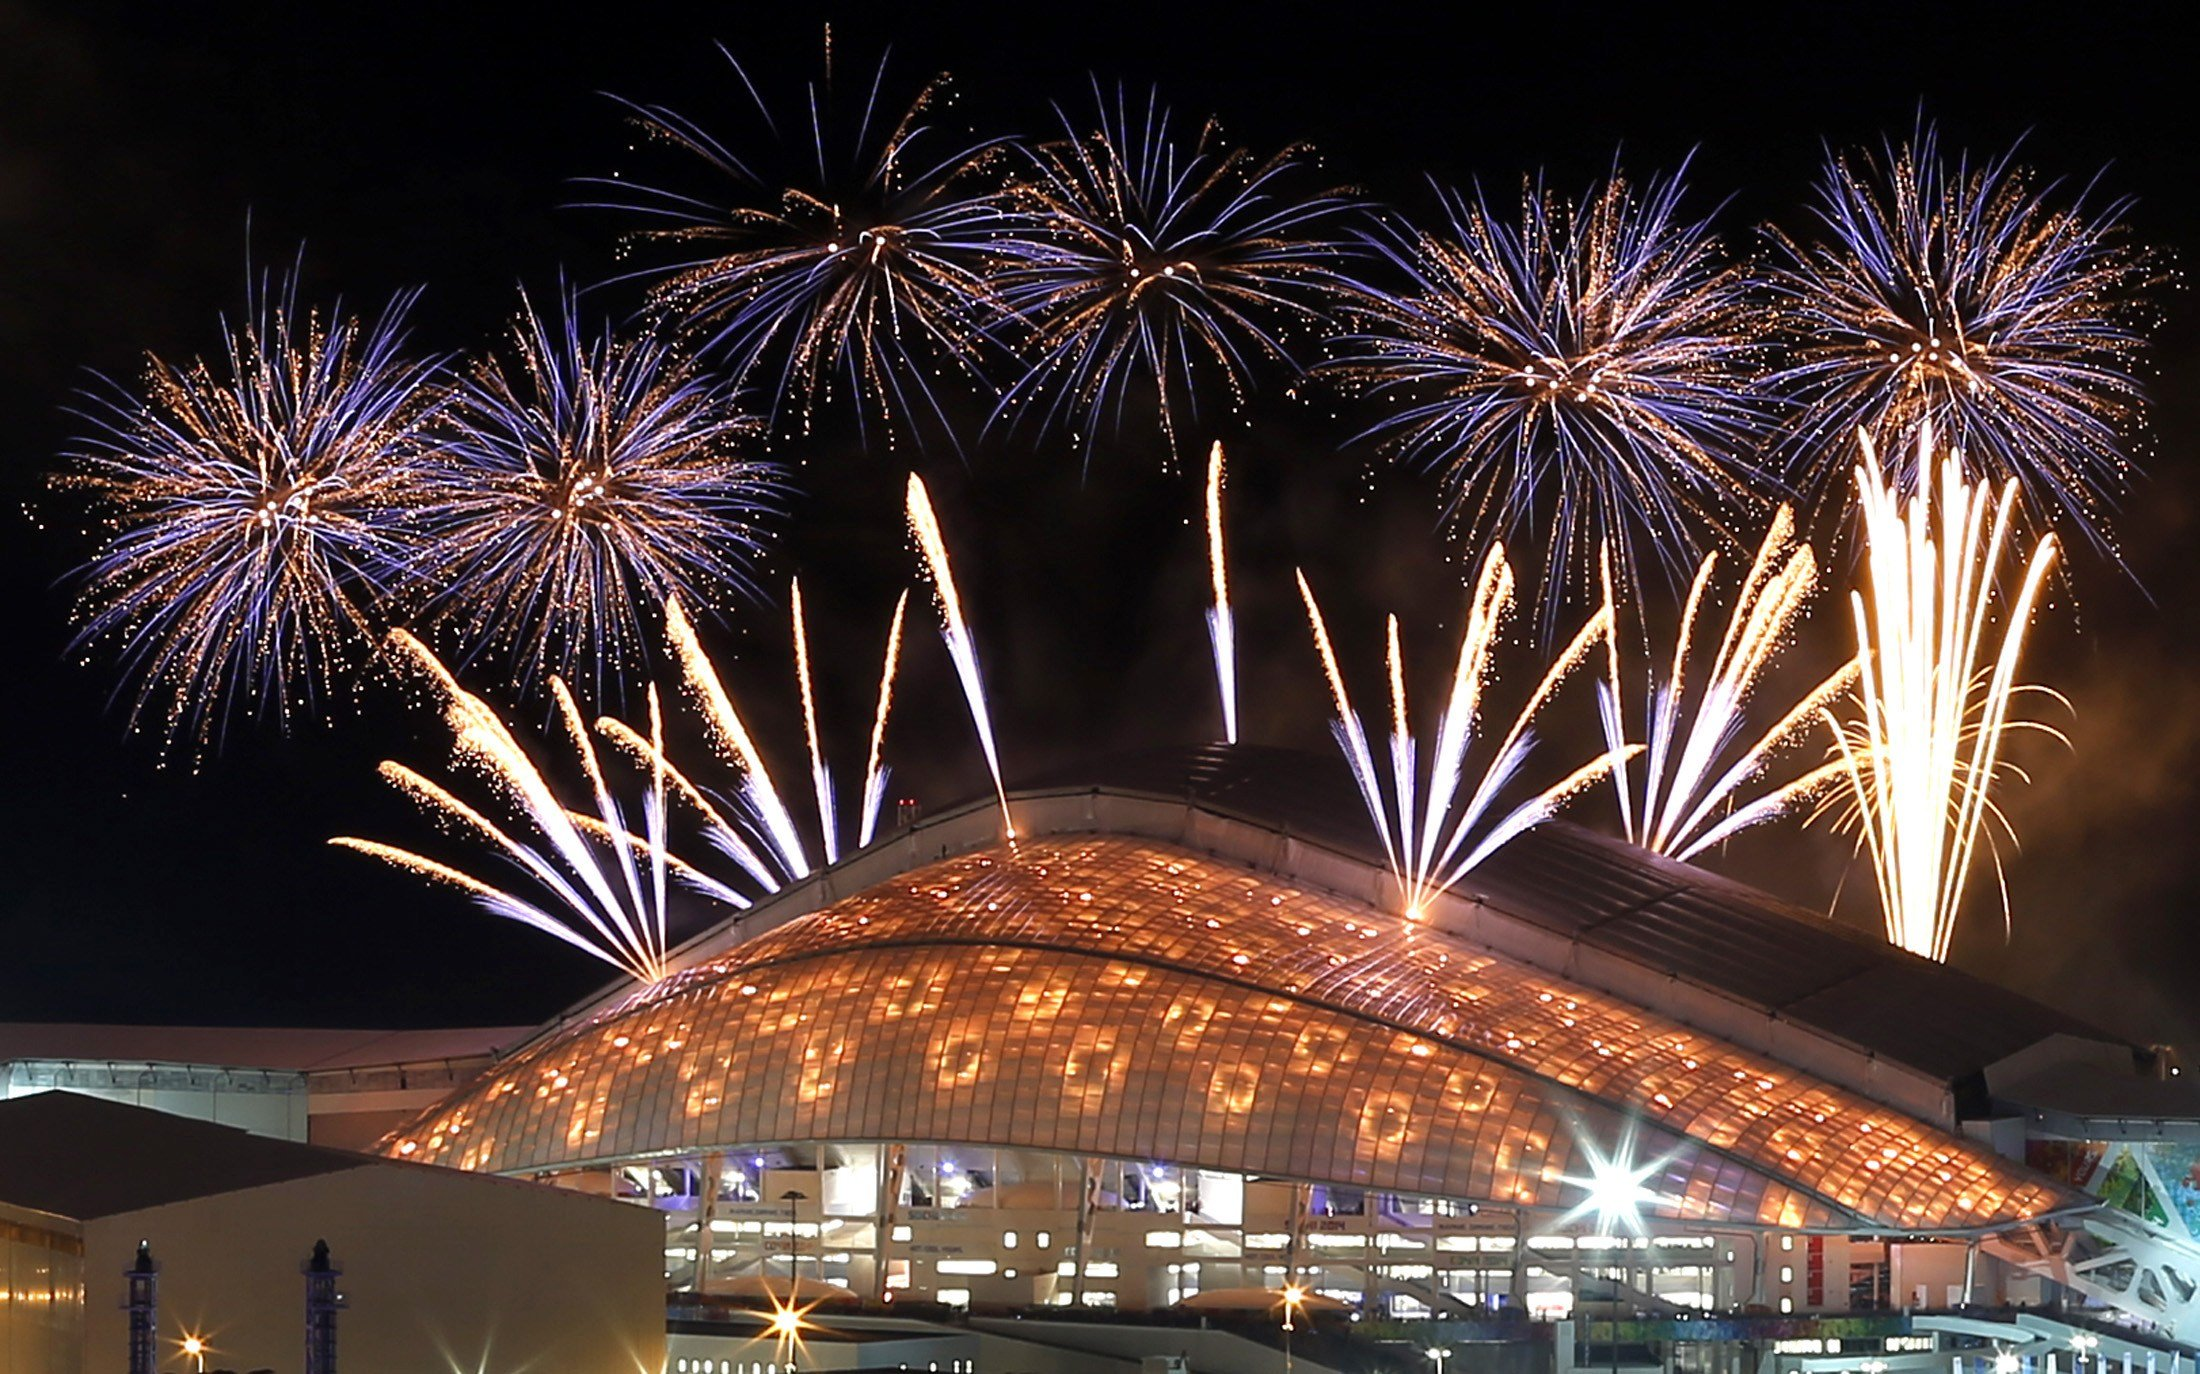 Fireworks over the Fisht Olympic Stadium at the Olympic Park during a rehearsal of the opening ceremony in Sochi, on Feb. 4, 2014.